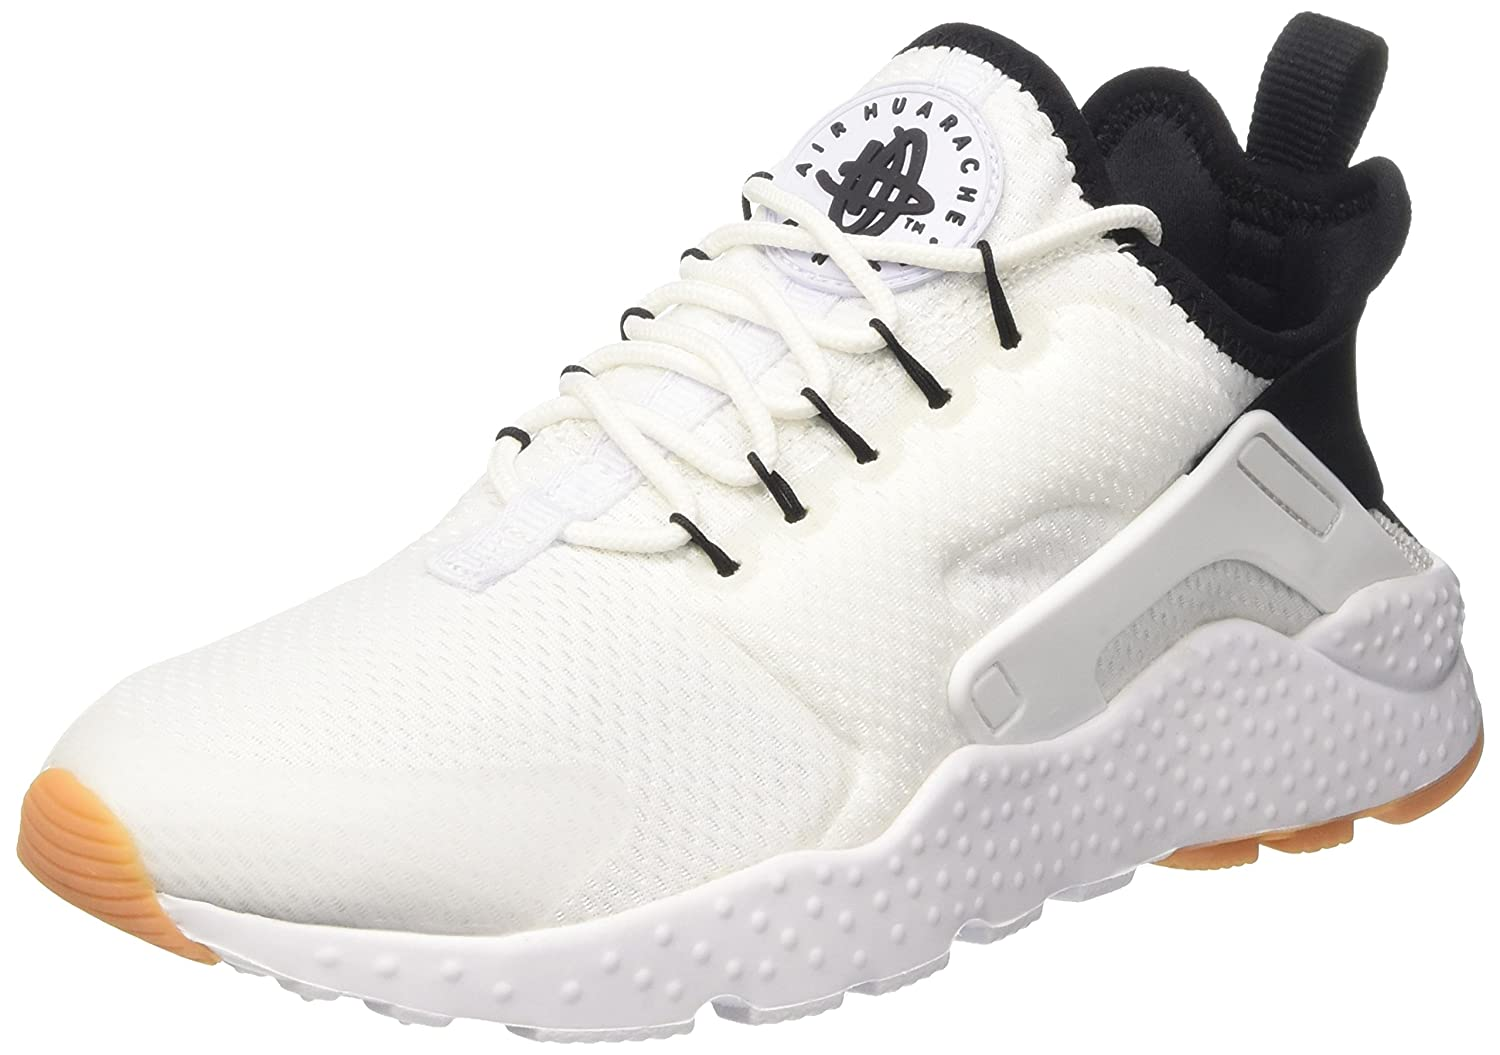 wholesale dealer f9bdc 480da Nike Women s Air Huarache Run Ultra White Black Gum Yellow White Running  Shoe 7 Women US  Amazon.in  Shoes   Handbags